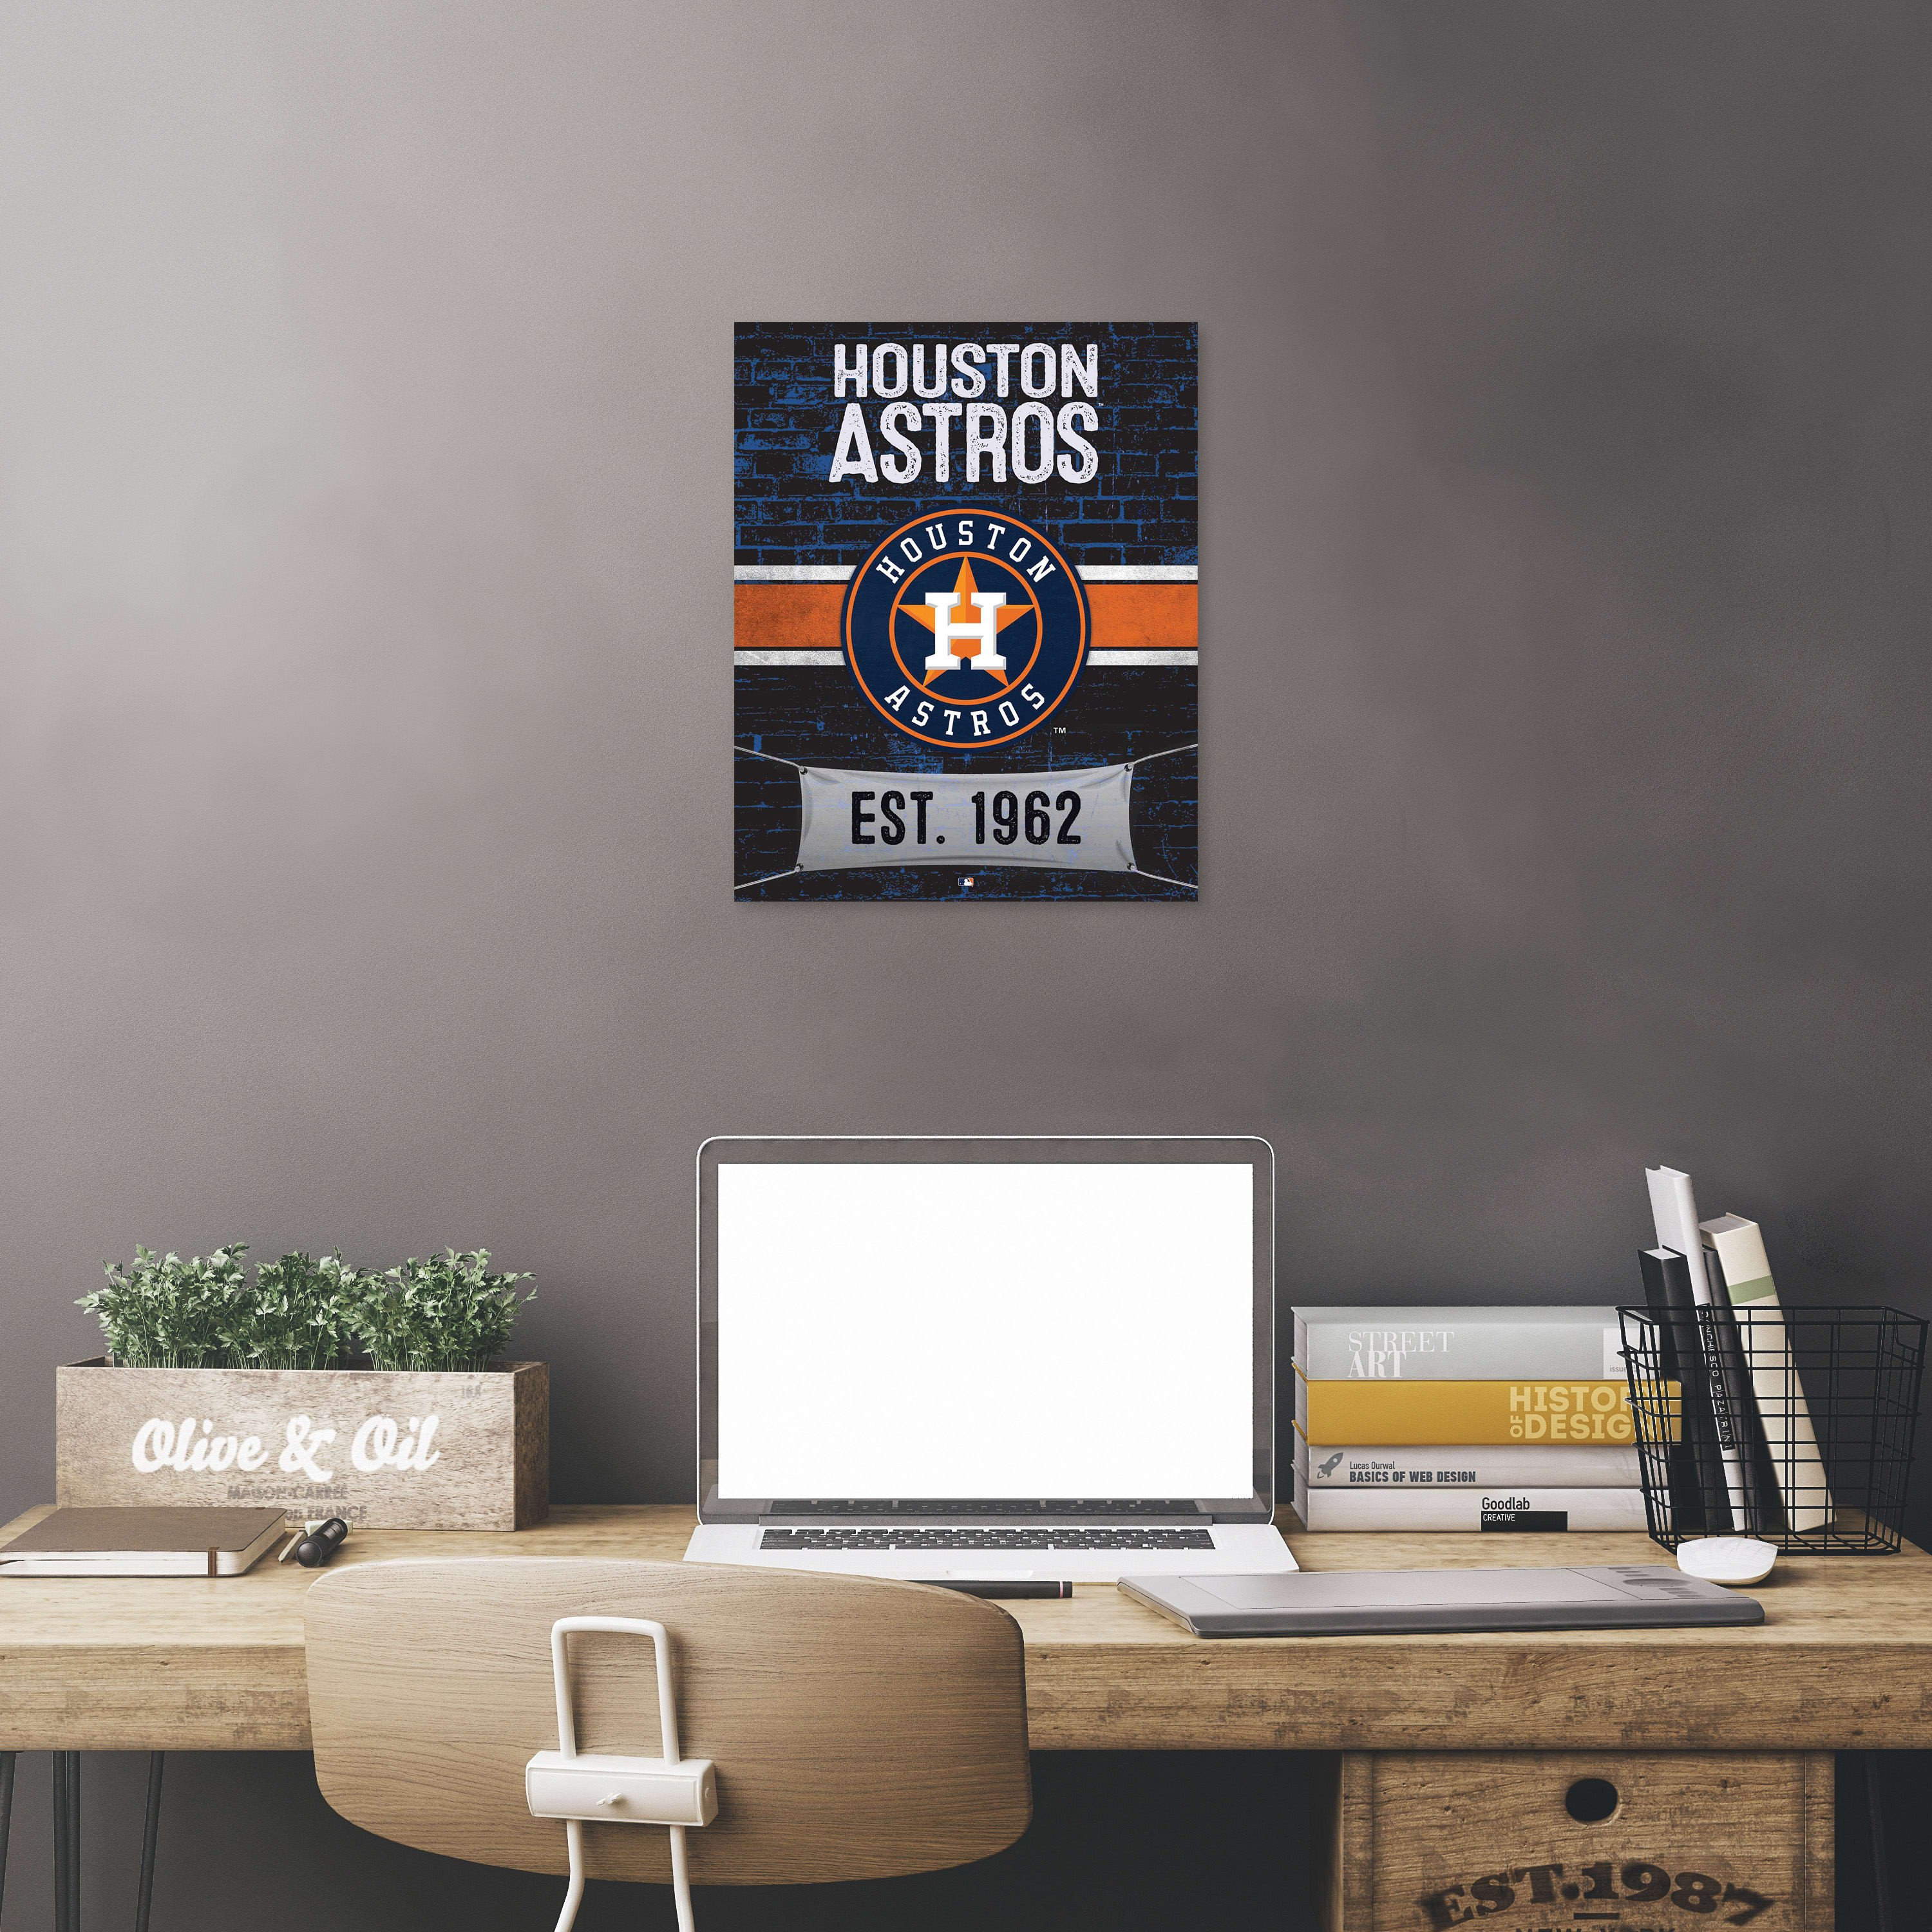 12x12 Bedroom Furniture Layout Inspirational Houston astros Brickyard Design Ficially Licensed Mlb Printed Canvas Art